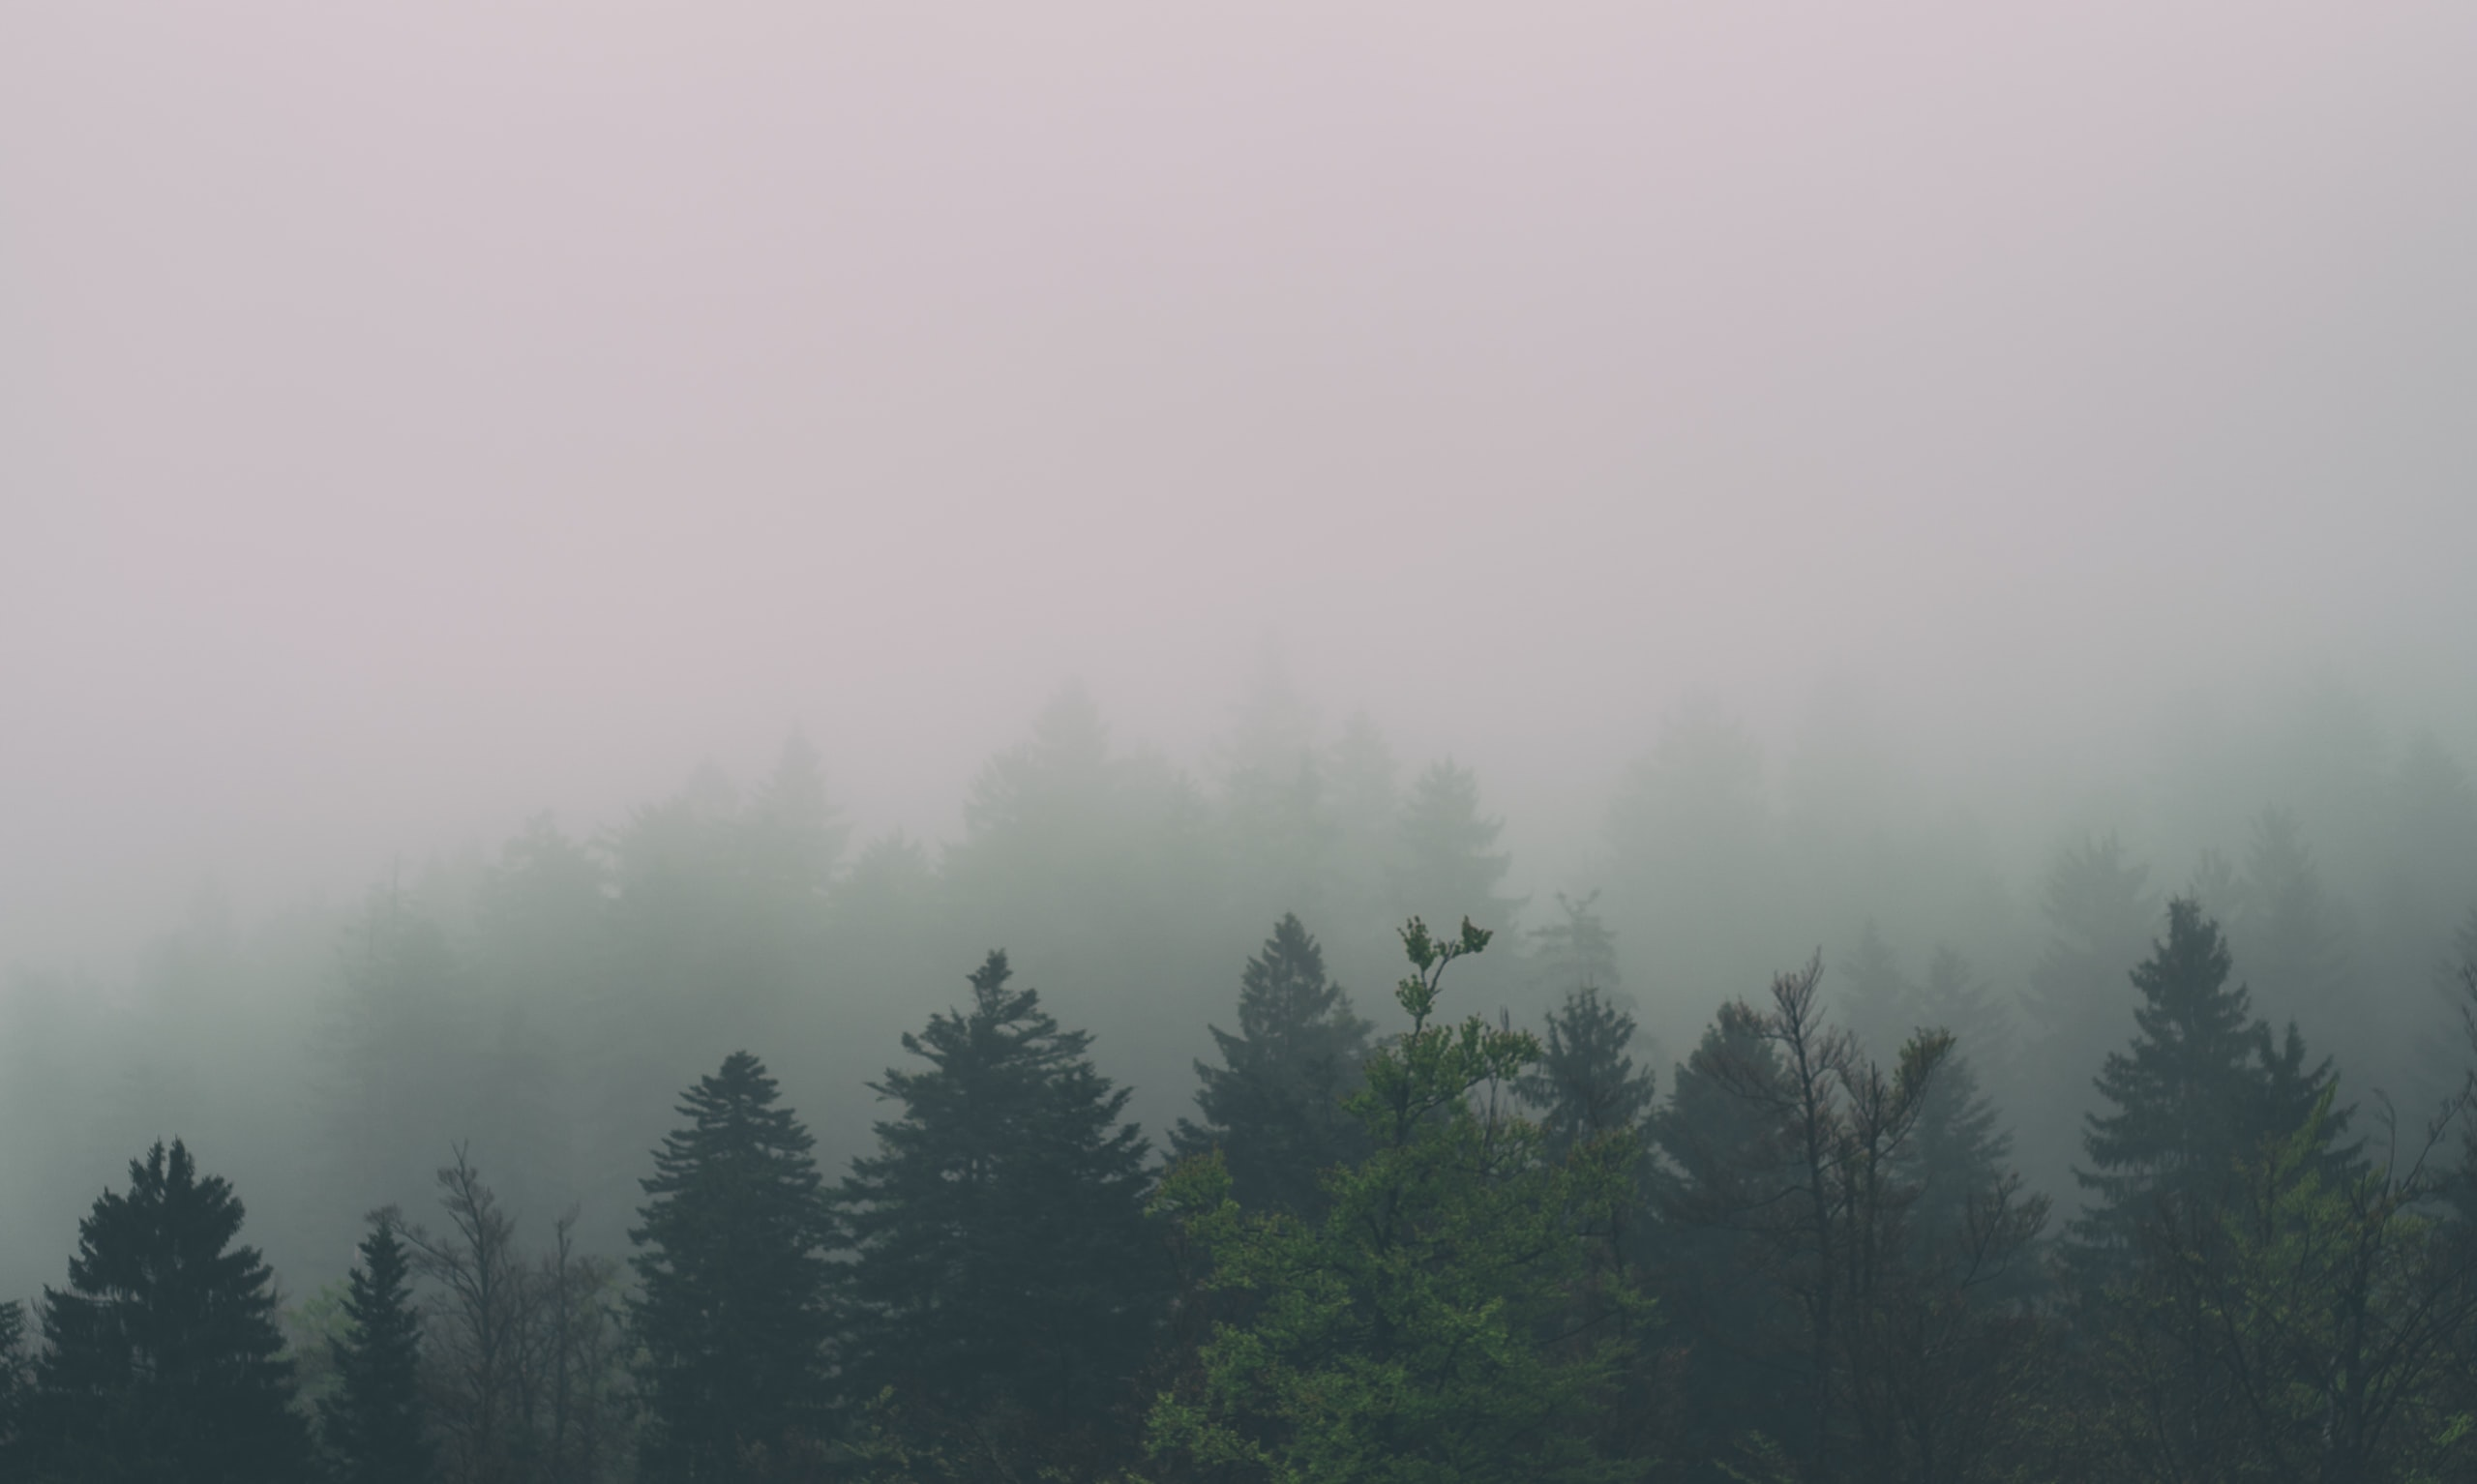 Silhouettes of evergreen trees shrouded in mist